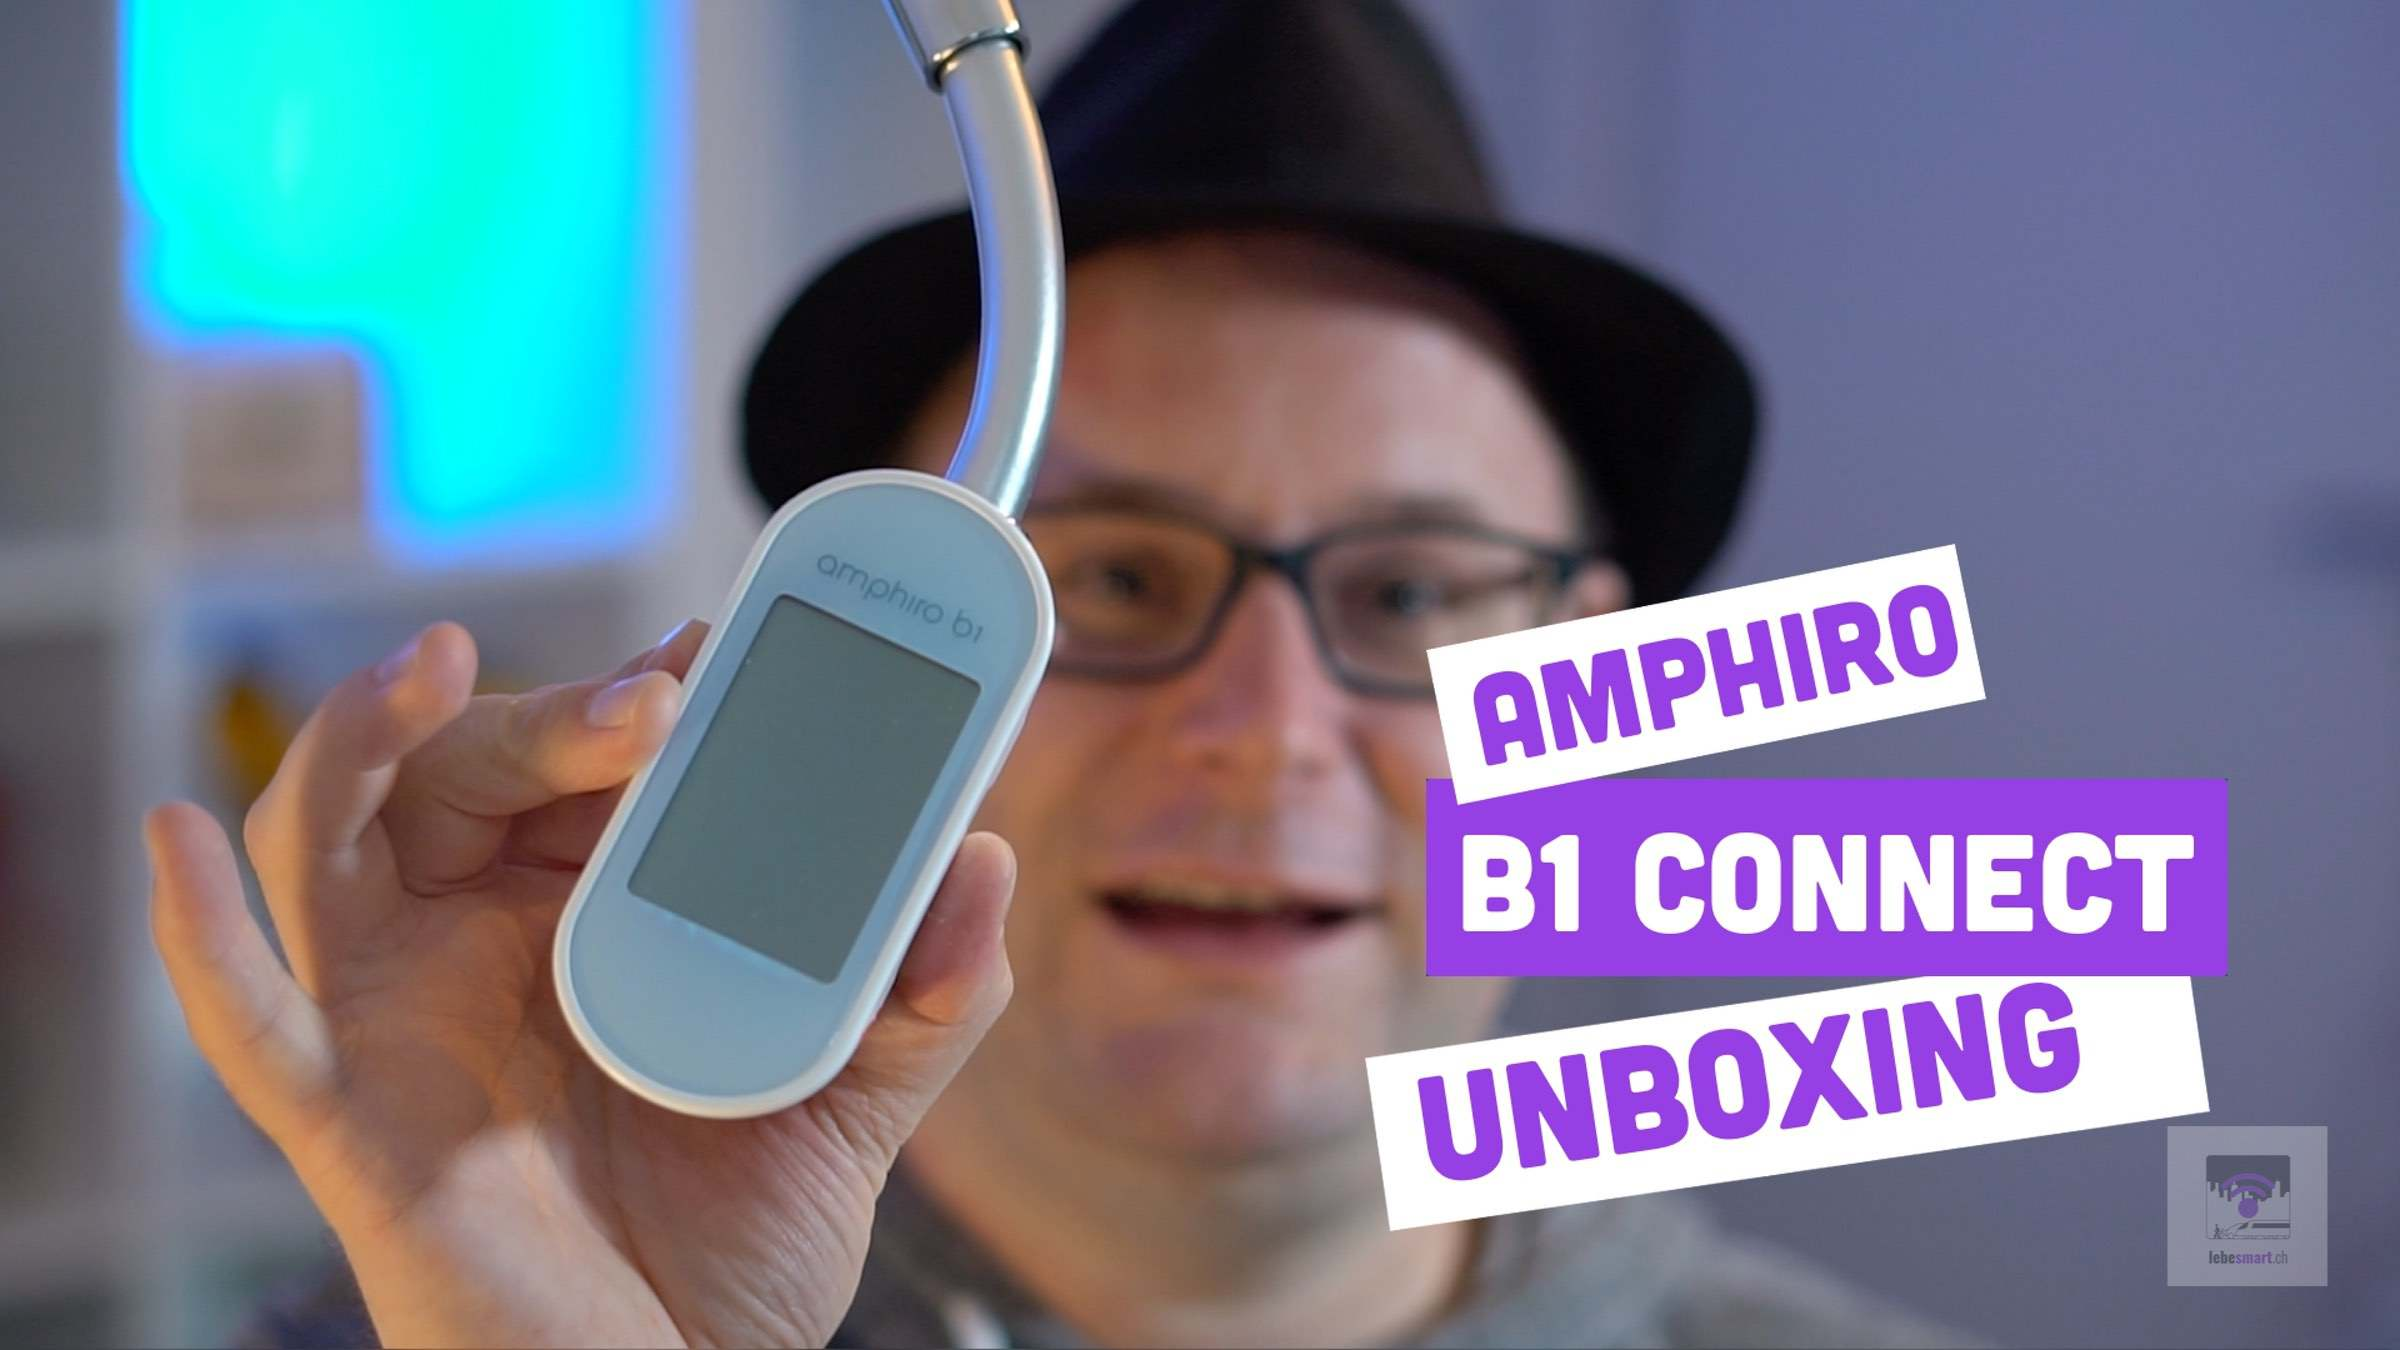 VIDEO – Amphiro b1 connect – Unboxing und Montage